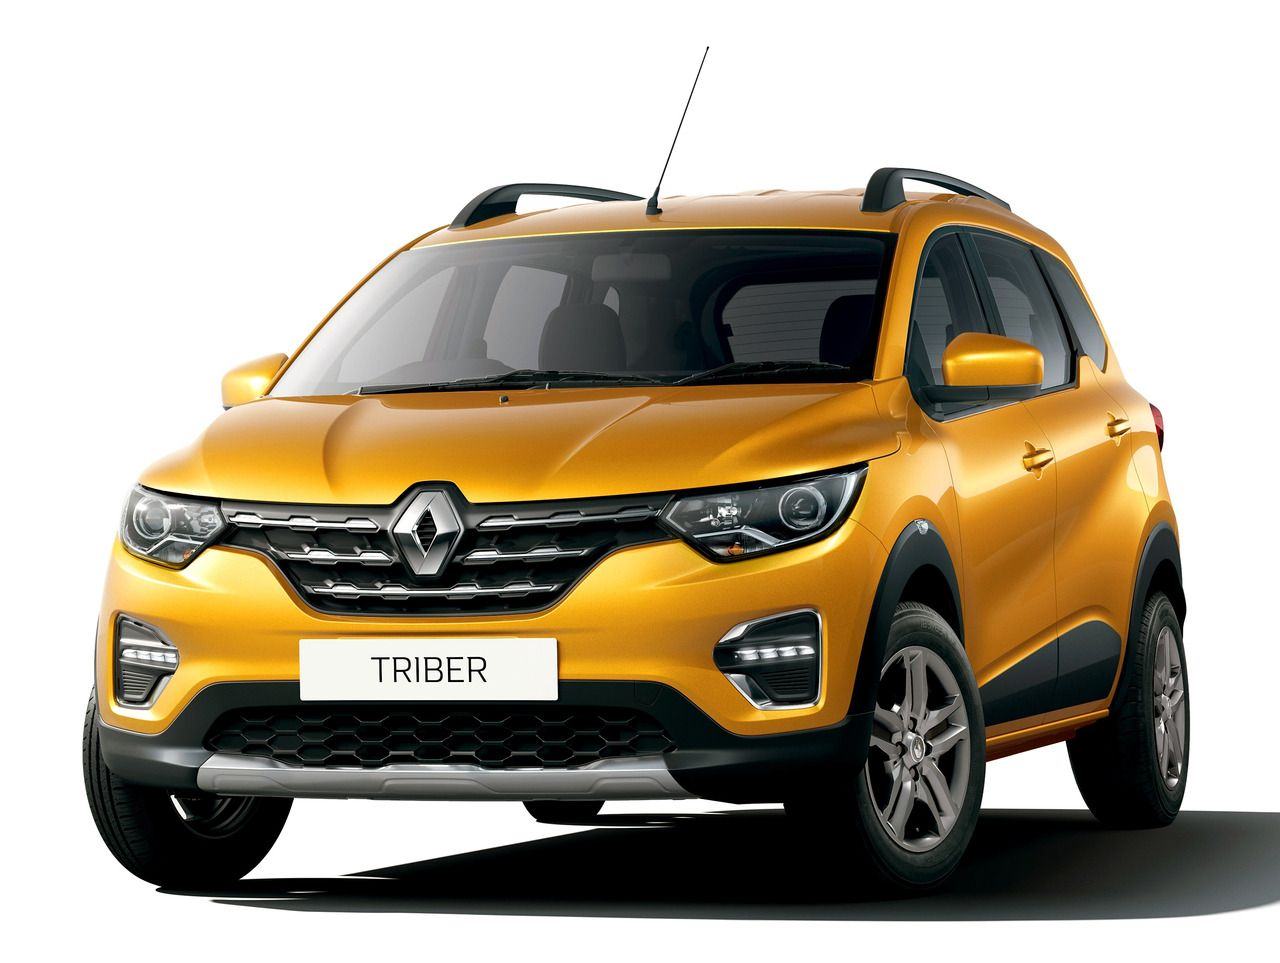 Renault Triber, 2020. A new sub 4 metre, 7seat compact